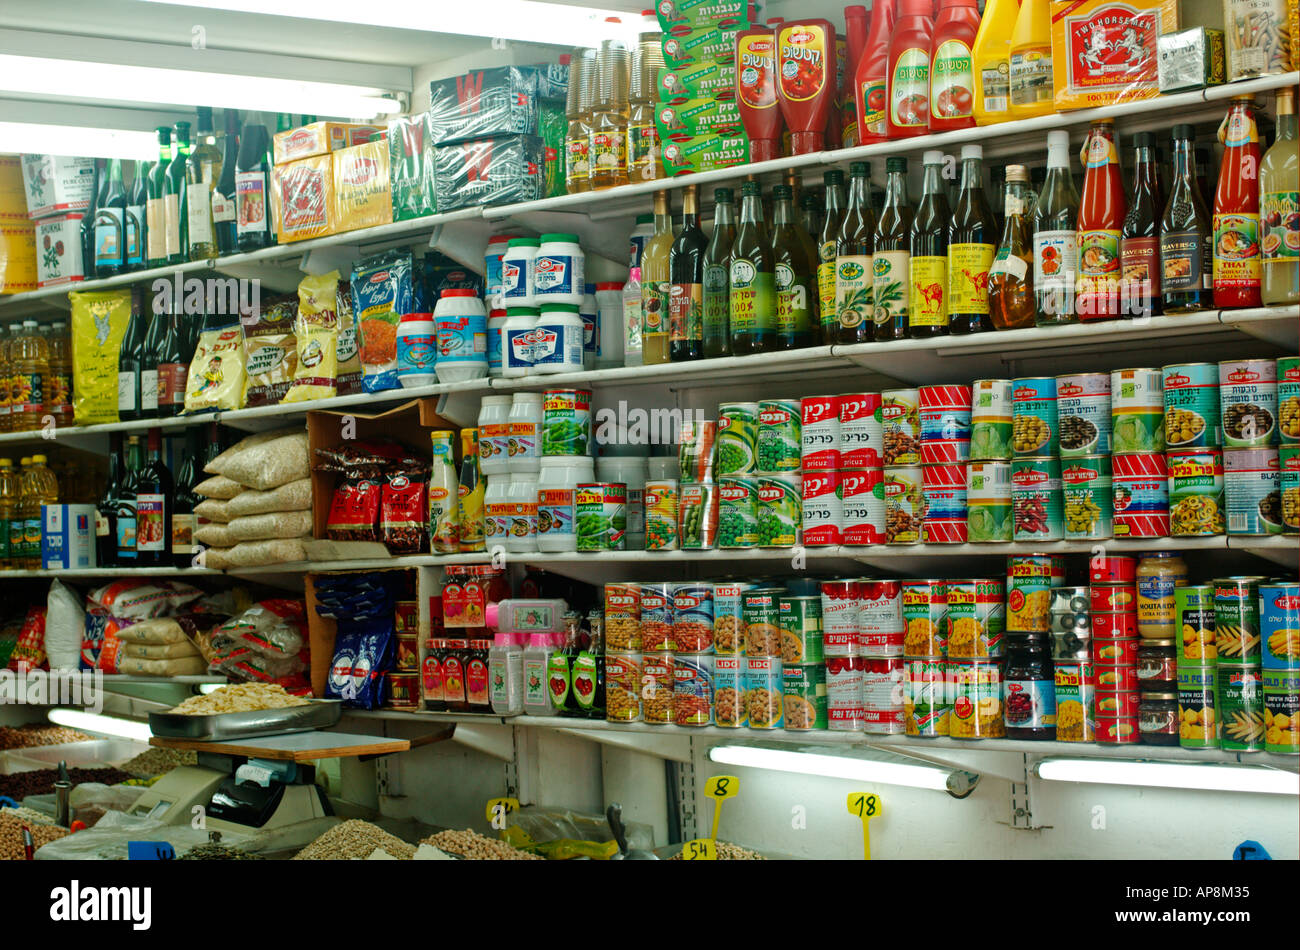 Israel Tel Aviv Lewinski market bottles tins and packets of food for sale at a small grocery store - Stock Image